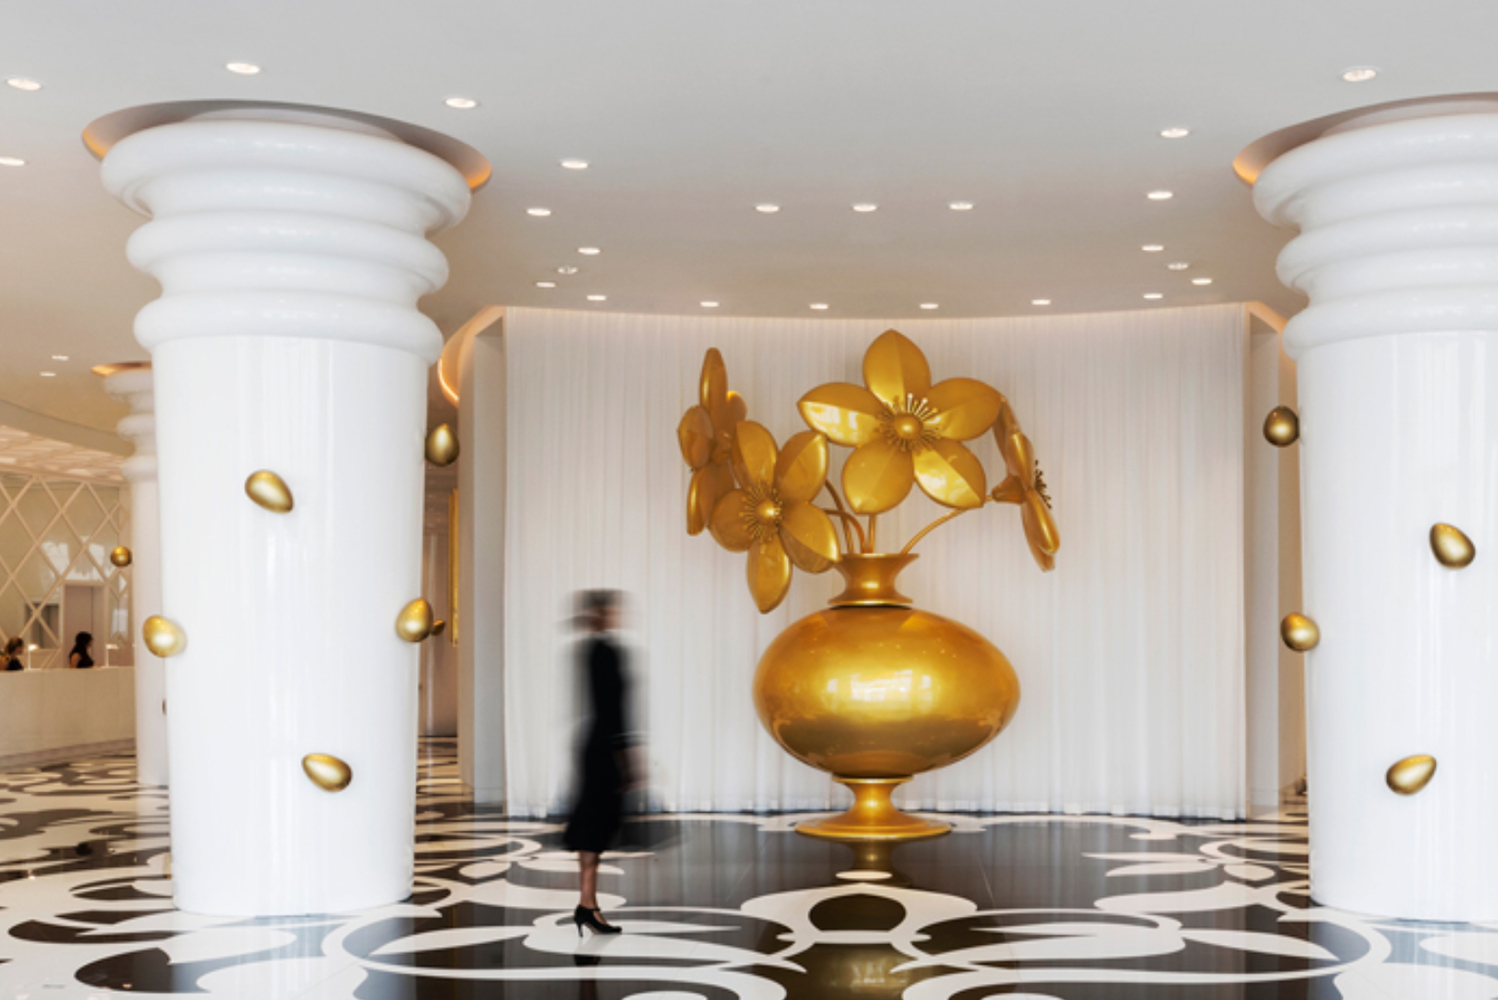 The hotel has 270 rooms, designed in collaboration with Dutch designer Marcel Wanders and South West Architecture.